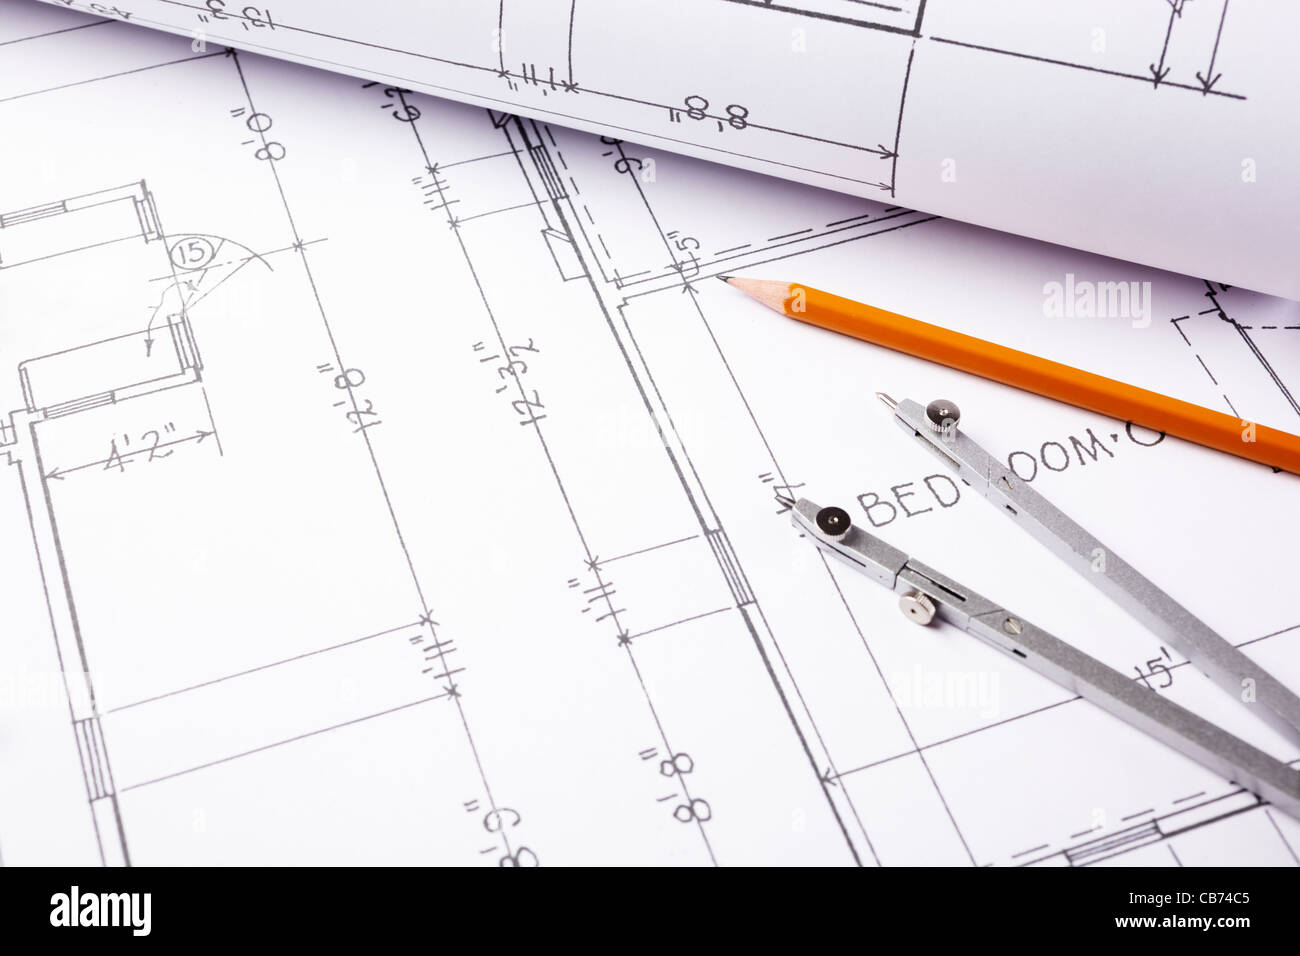 Backgrounds paperwork blueprint pencil stock photos backgrounds blueprints stock image malvernweather Image collections